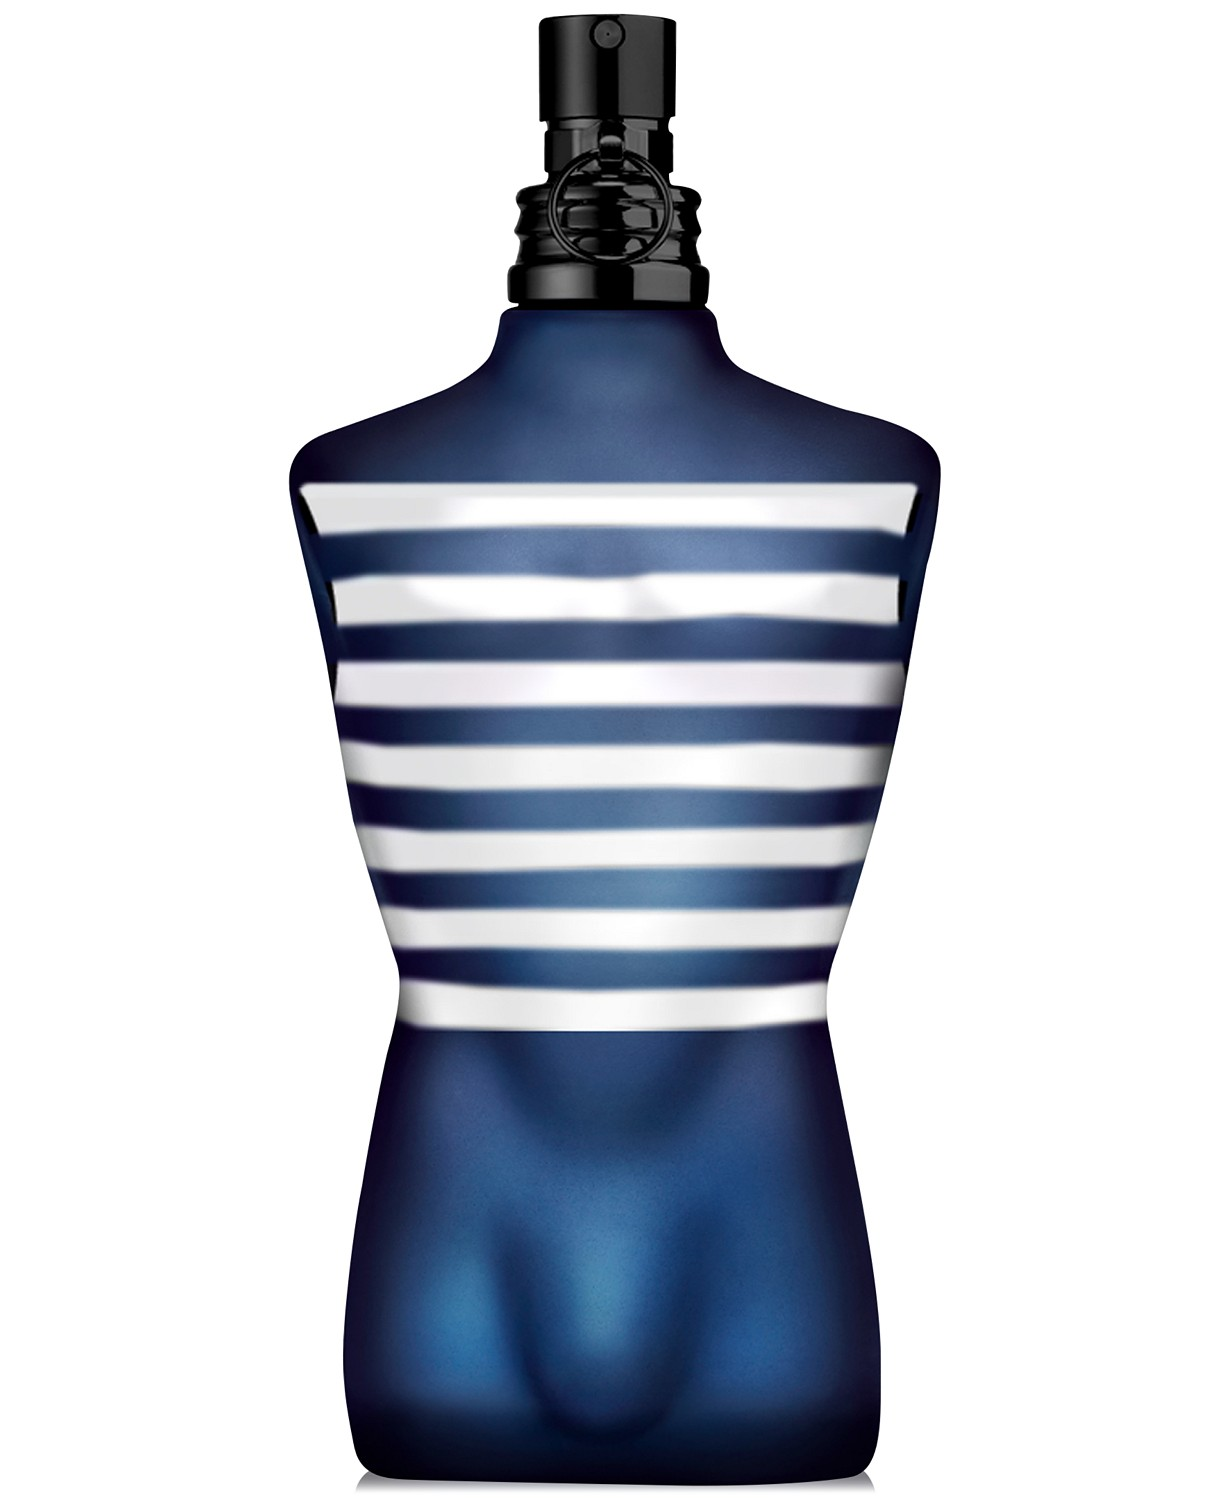 06312dfce Le Male In The Navy Jean Paul Gaultier cologne - a new fragrance for ...